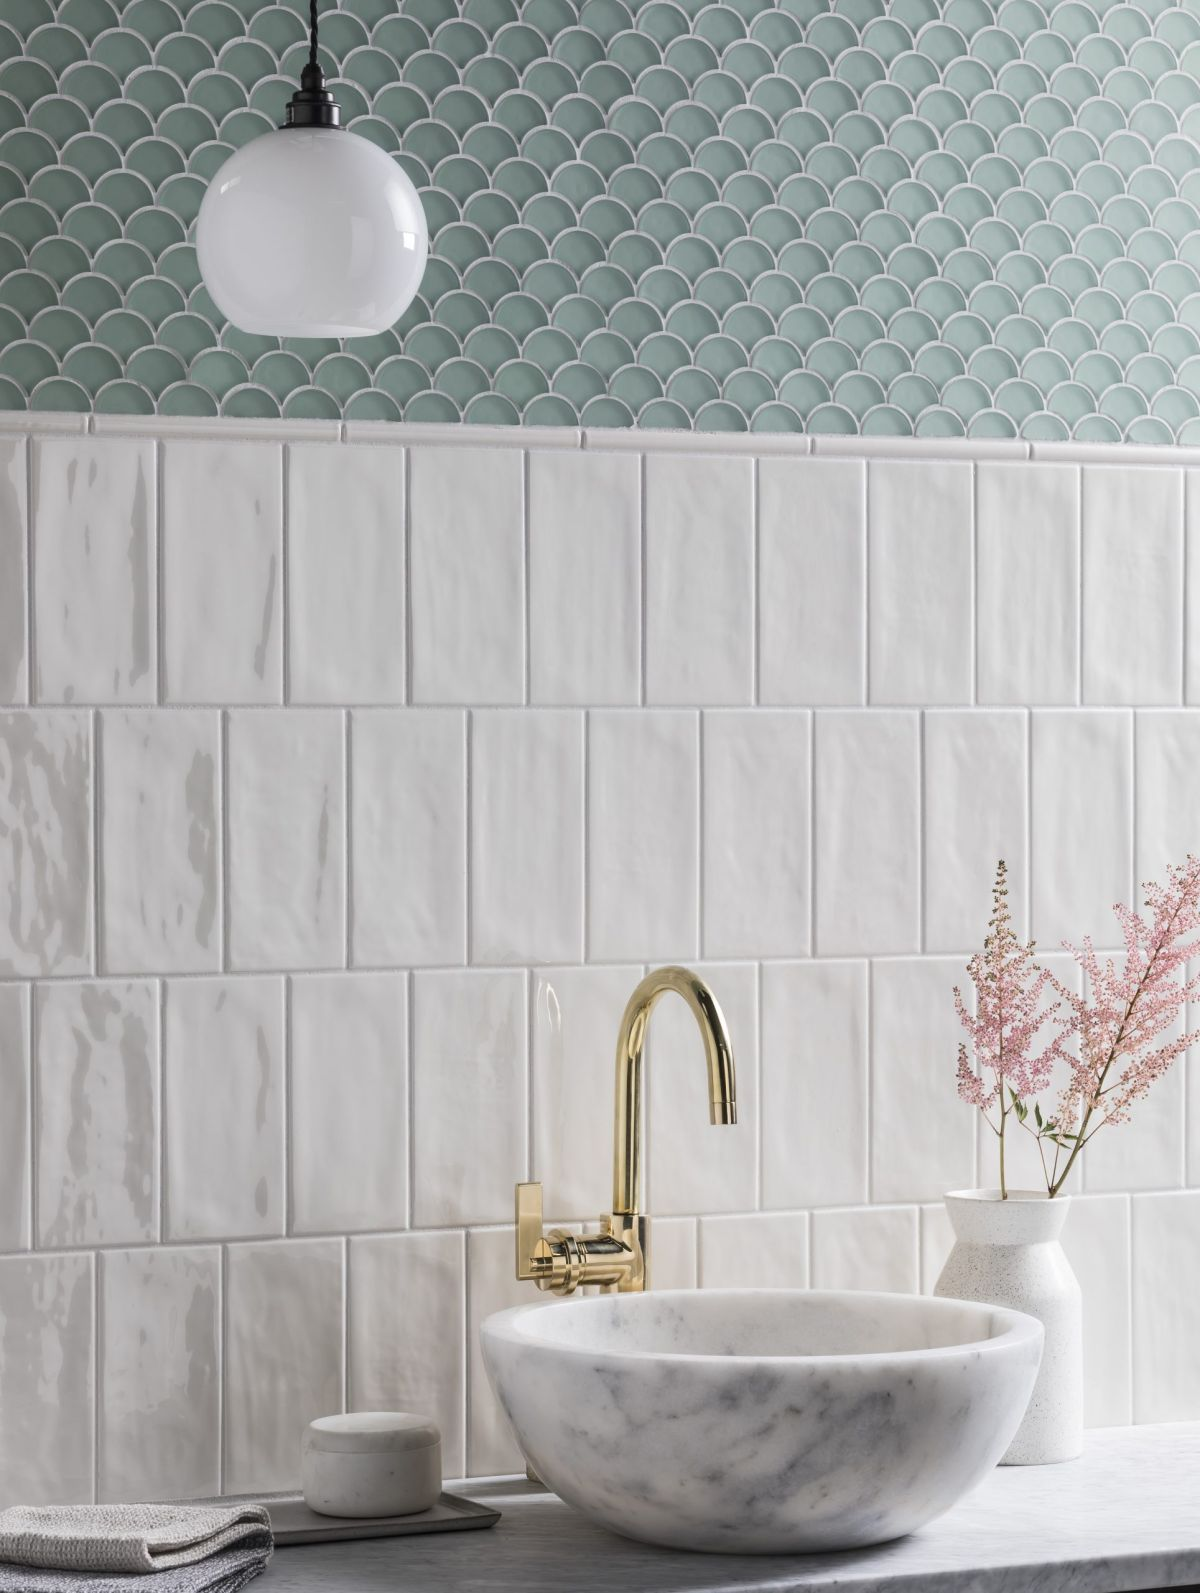 Cool Bathroom Tile Ideas From Metro Tiles To Fish Scale Herringbone Livingetc Livingetcdocument Documenttype